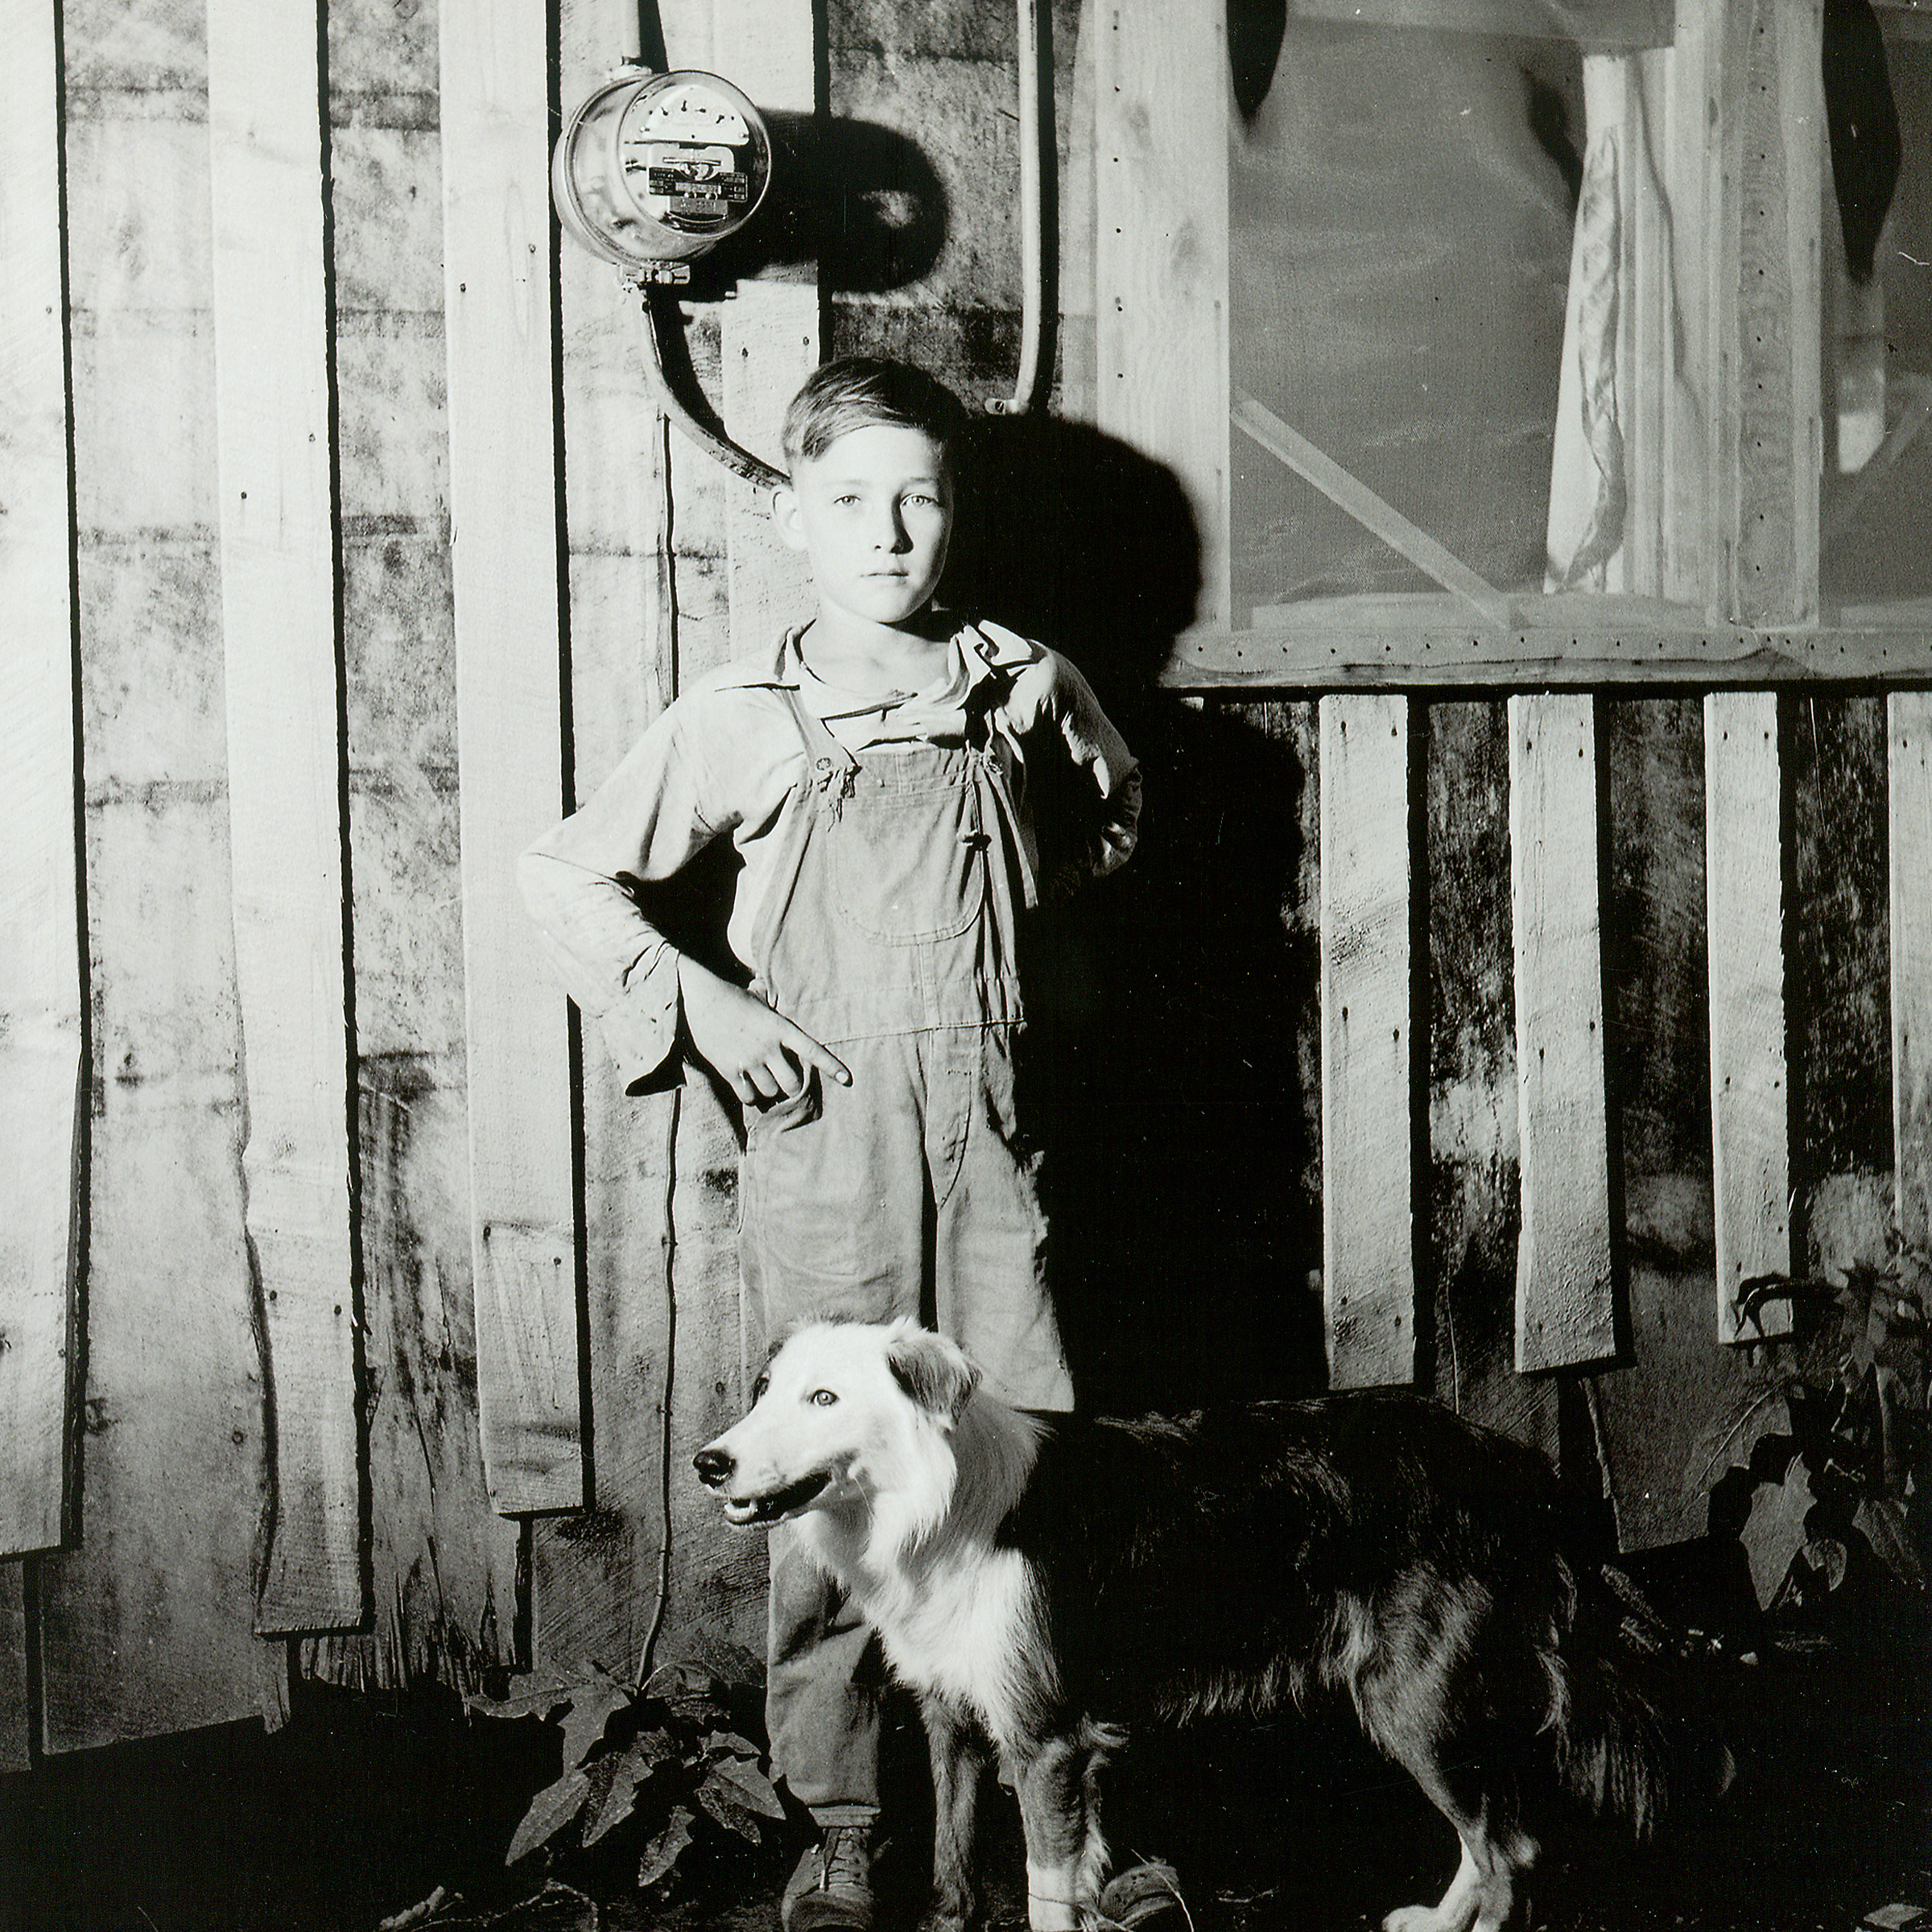 Boy with Meter Box